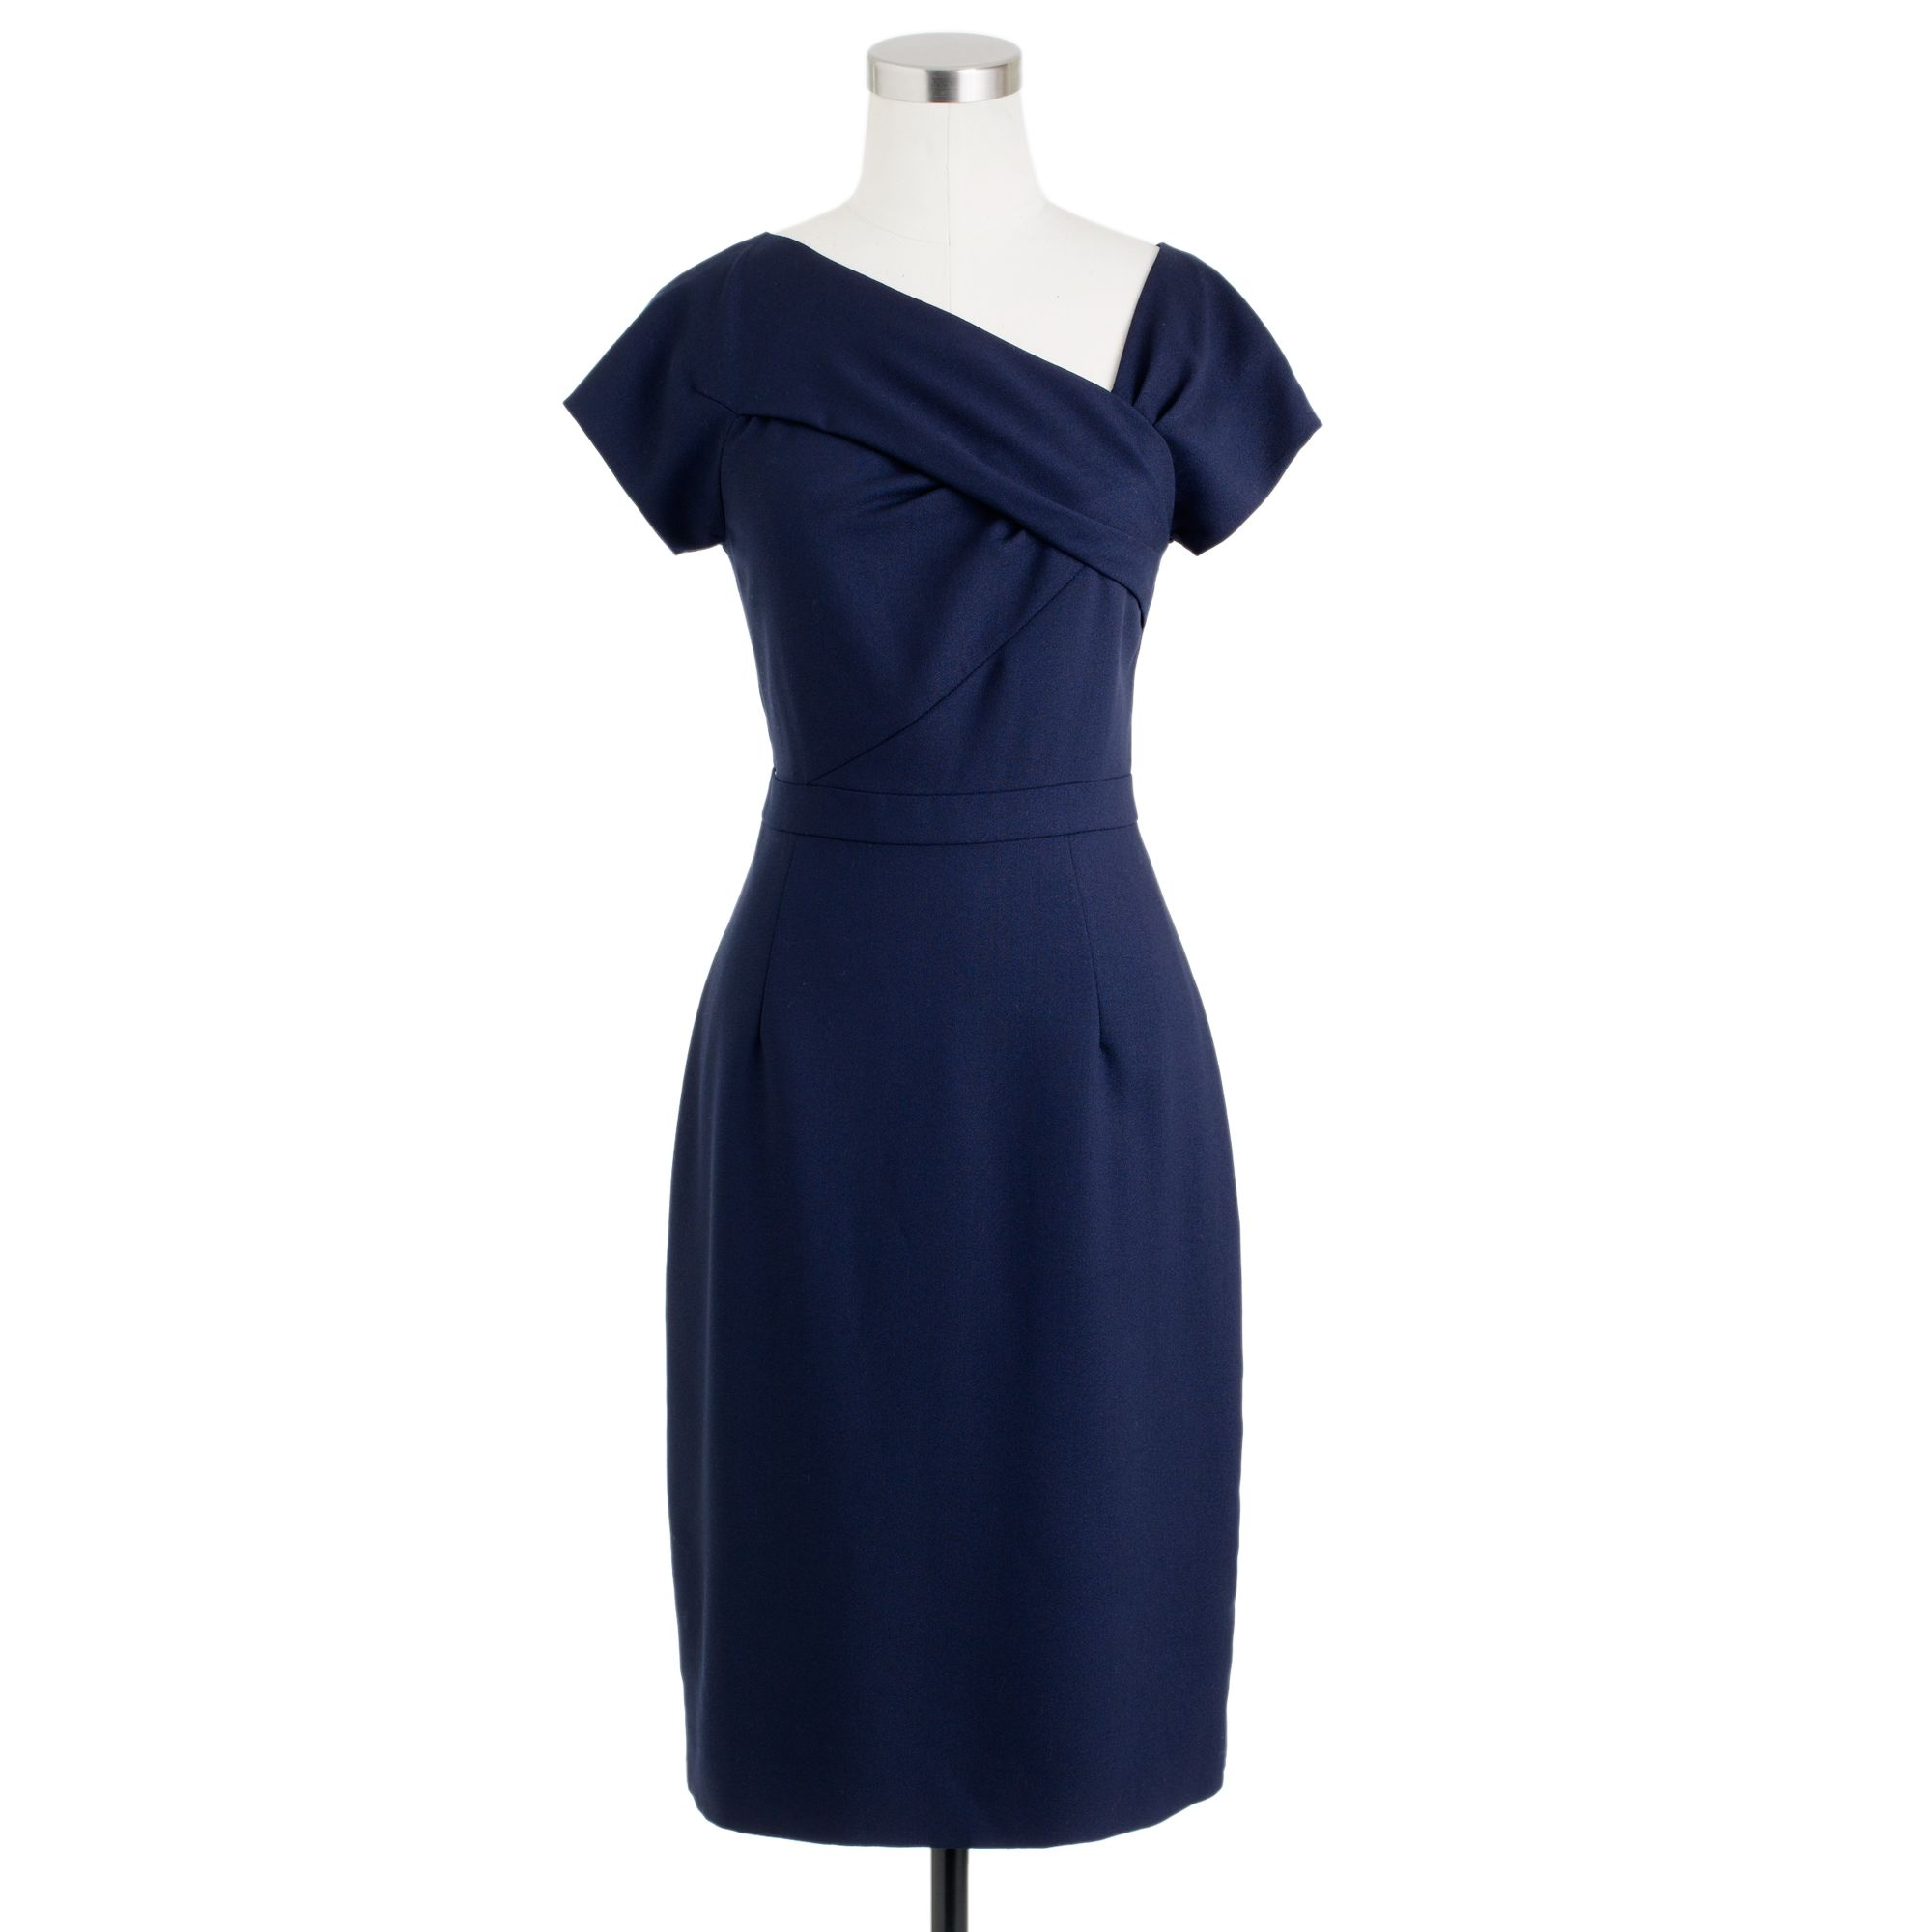 Origami dress in wool crepe in blue navy lyst for Jcrew com